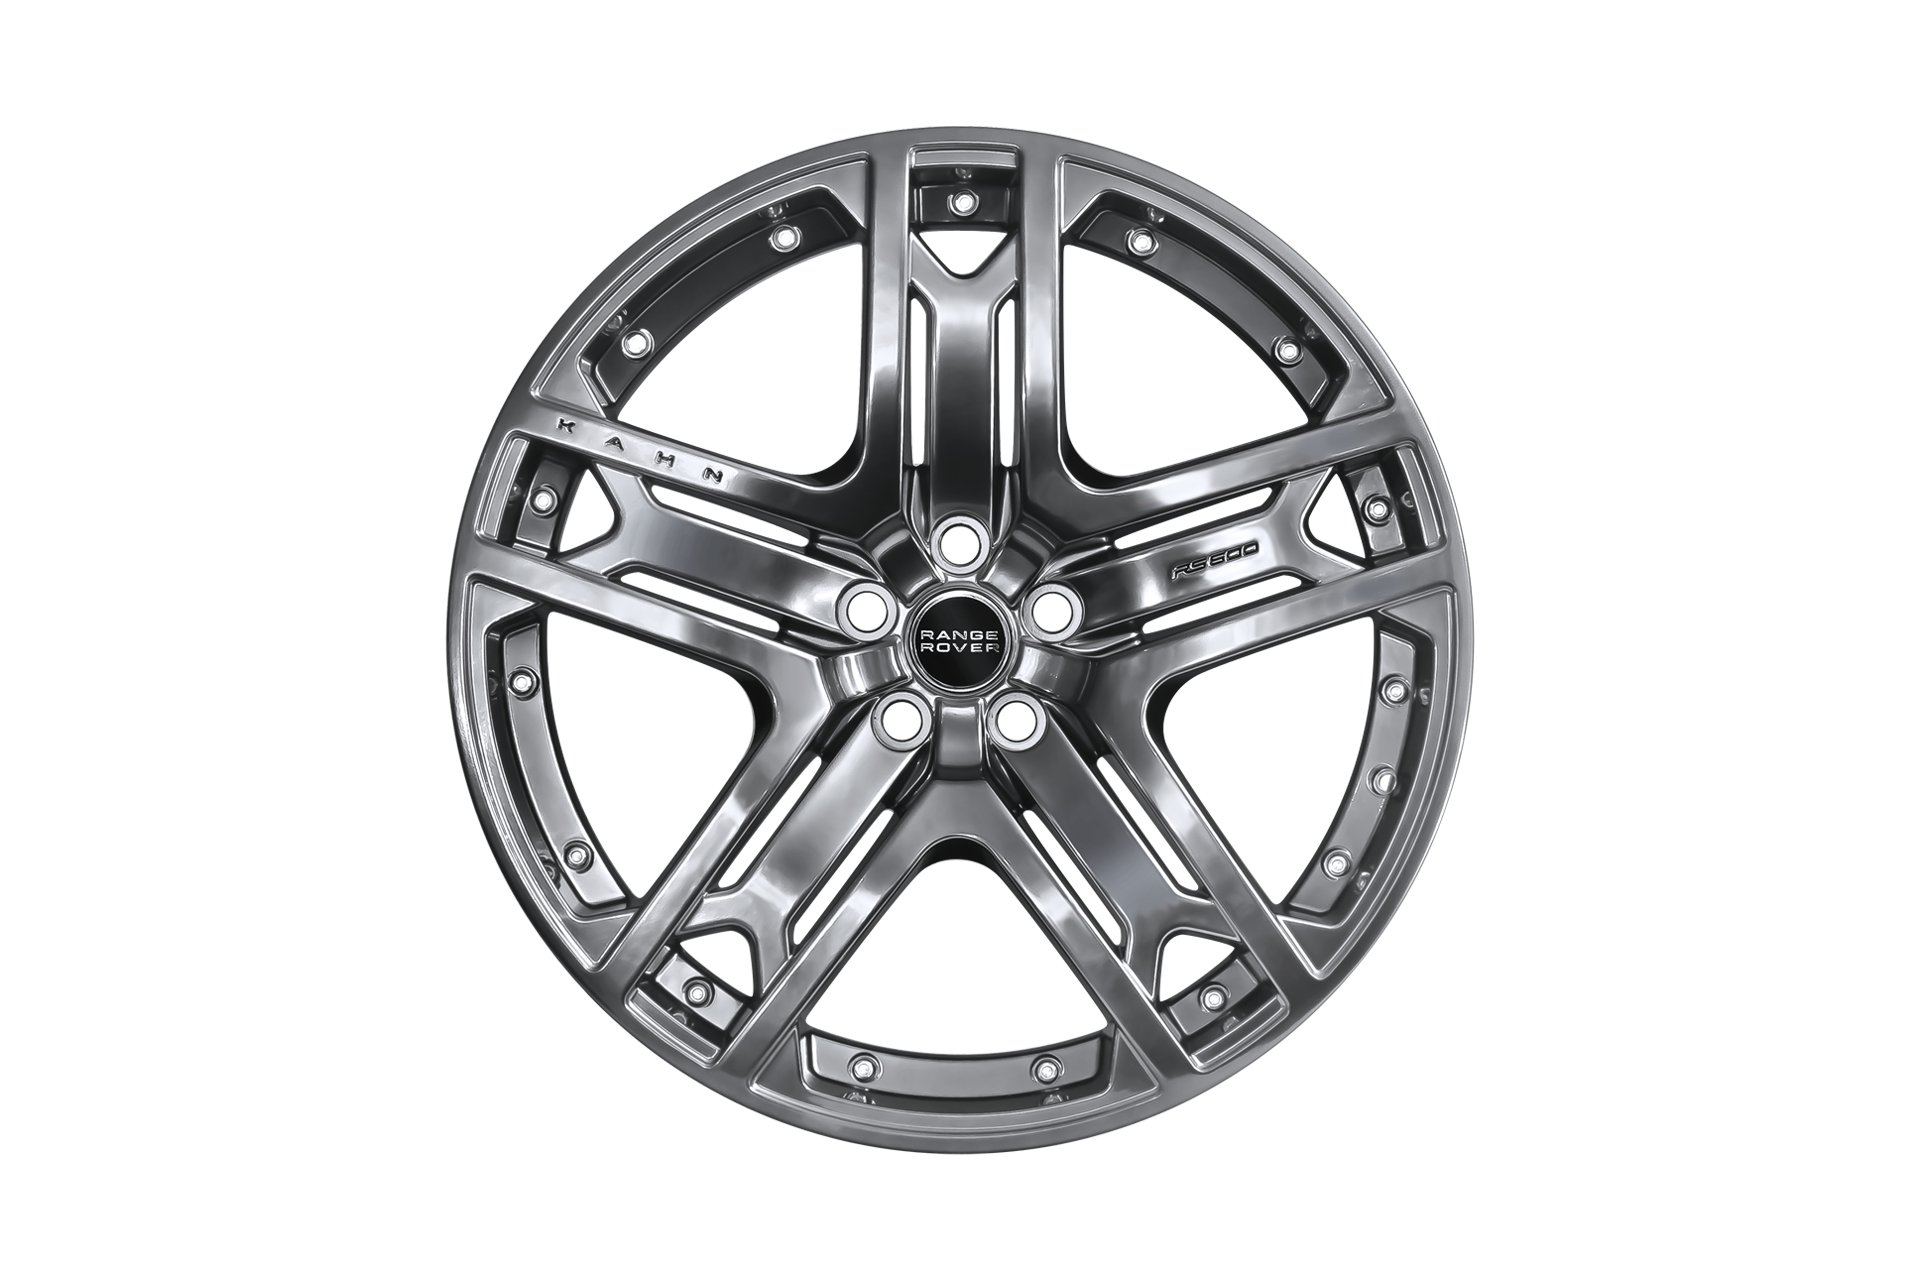 Range Rover (2002-2009) Rs600 Light Alloy Wheels by Kahn - Image 3767